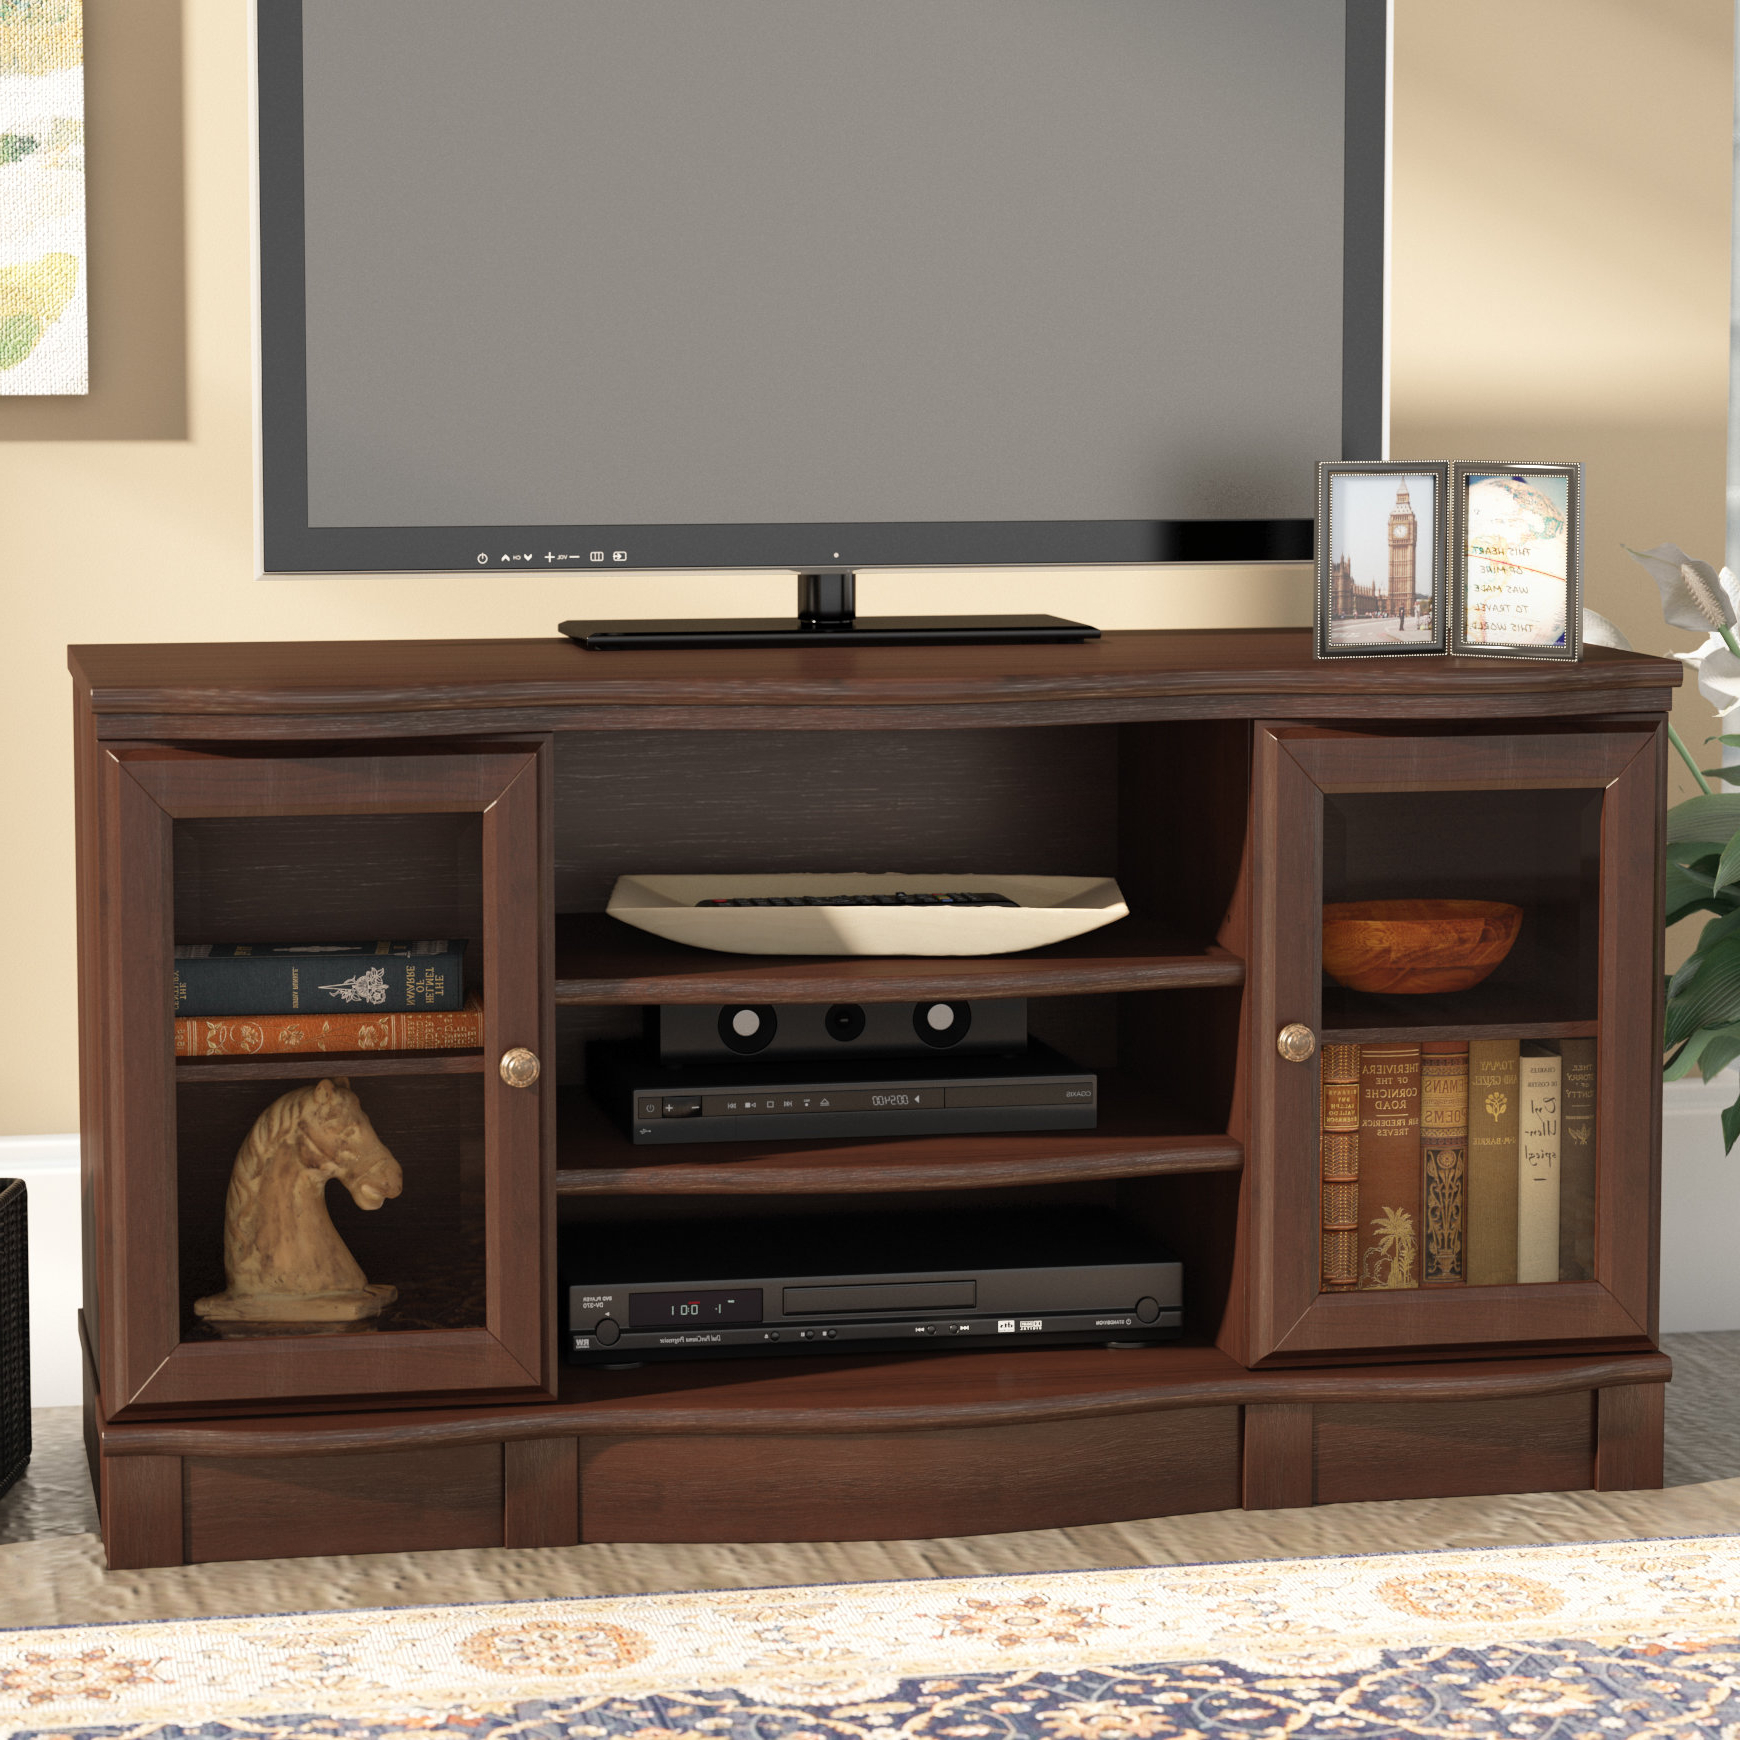 Tv Stand For 75 Inch Tv | Wayfair Pertaining To Laurent 70 Inch Tv Stands (View 16 of 20)